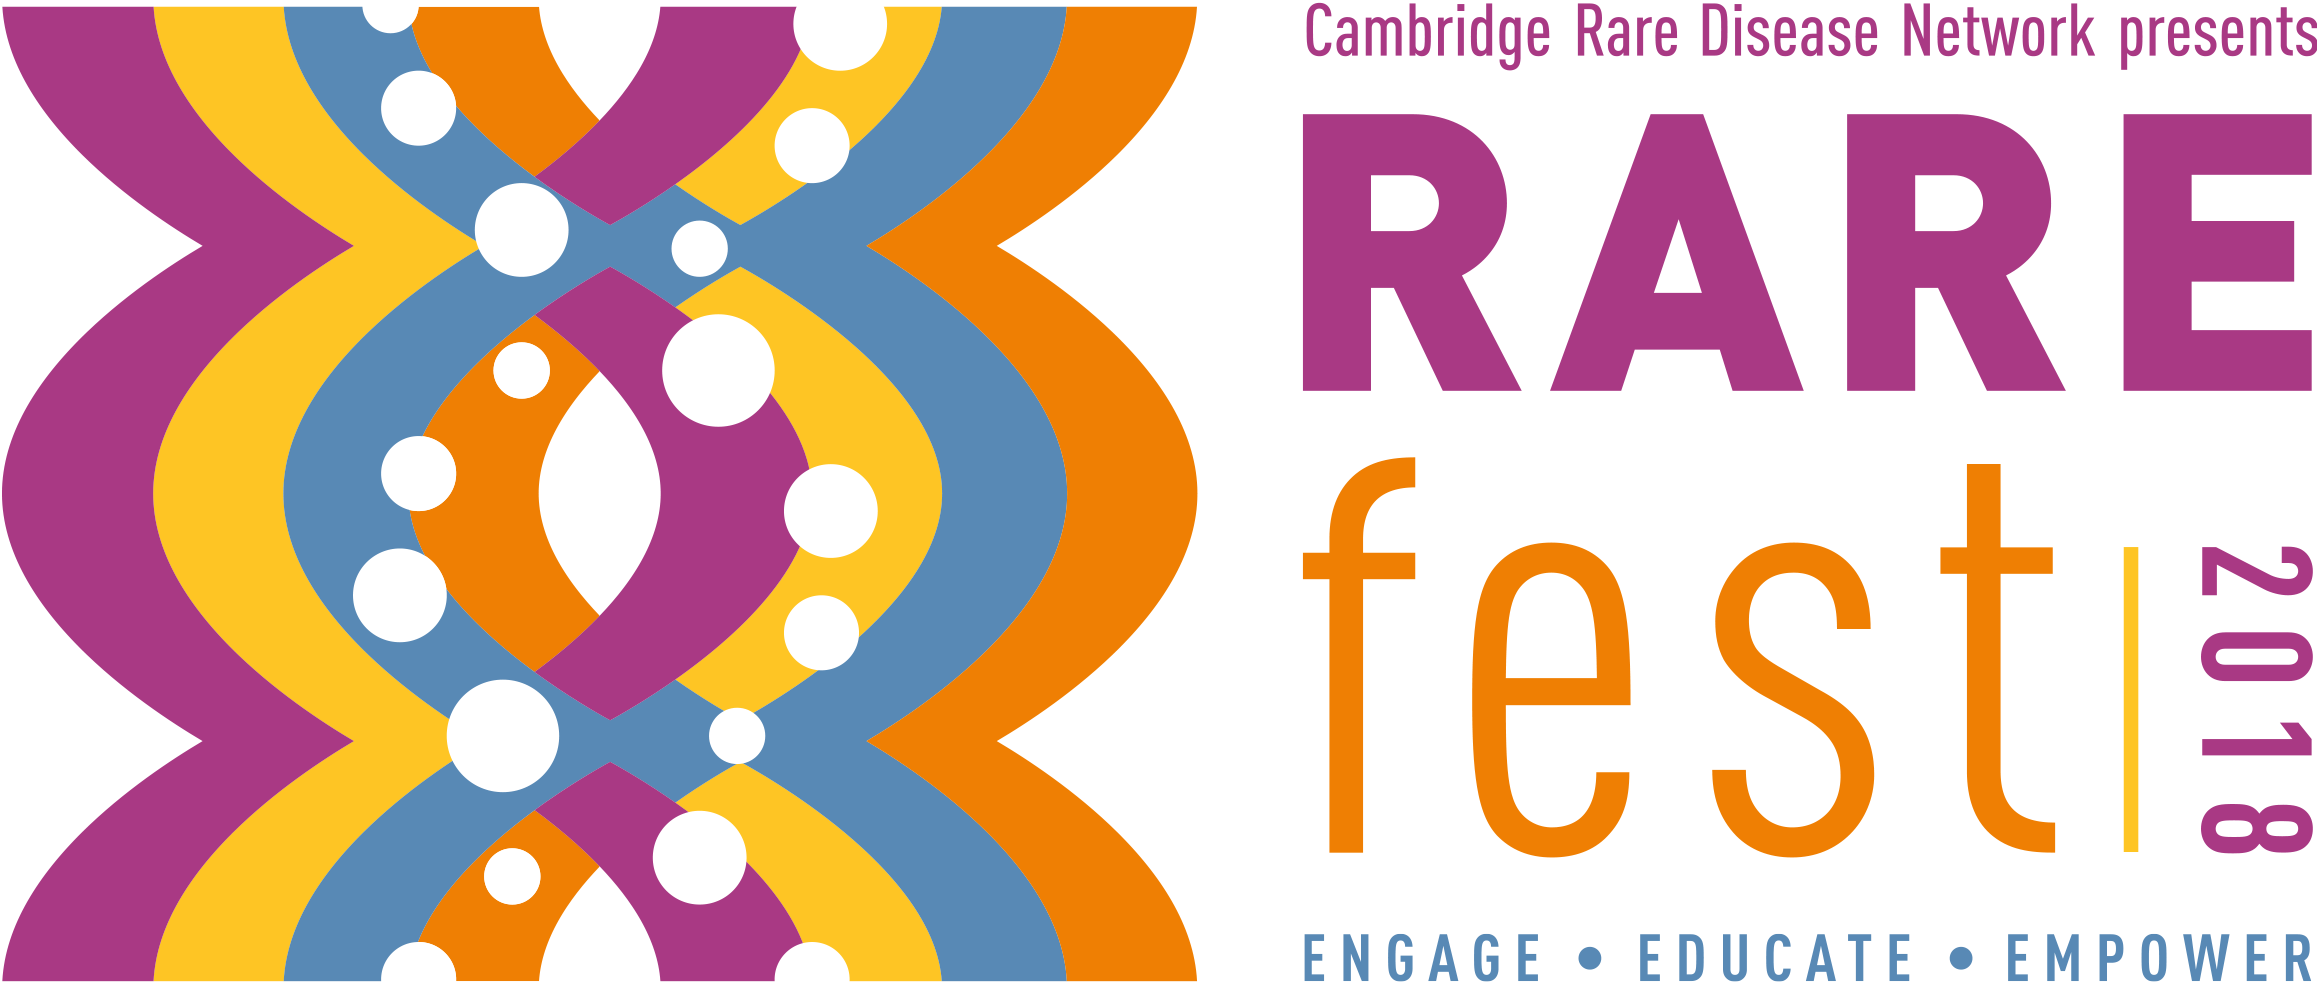 Graphic image for the RARE fest event with a colourful shape representing DNA